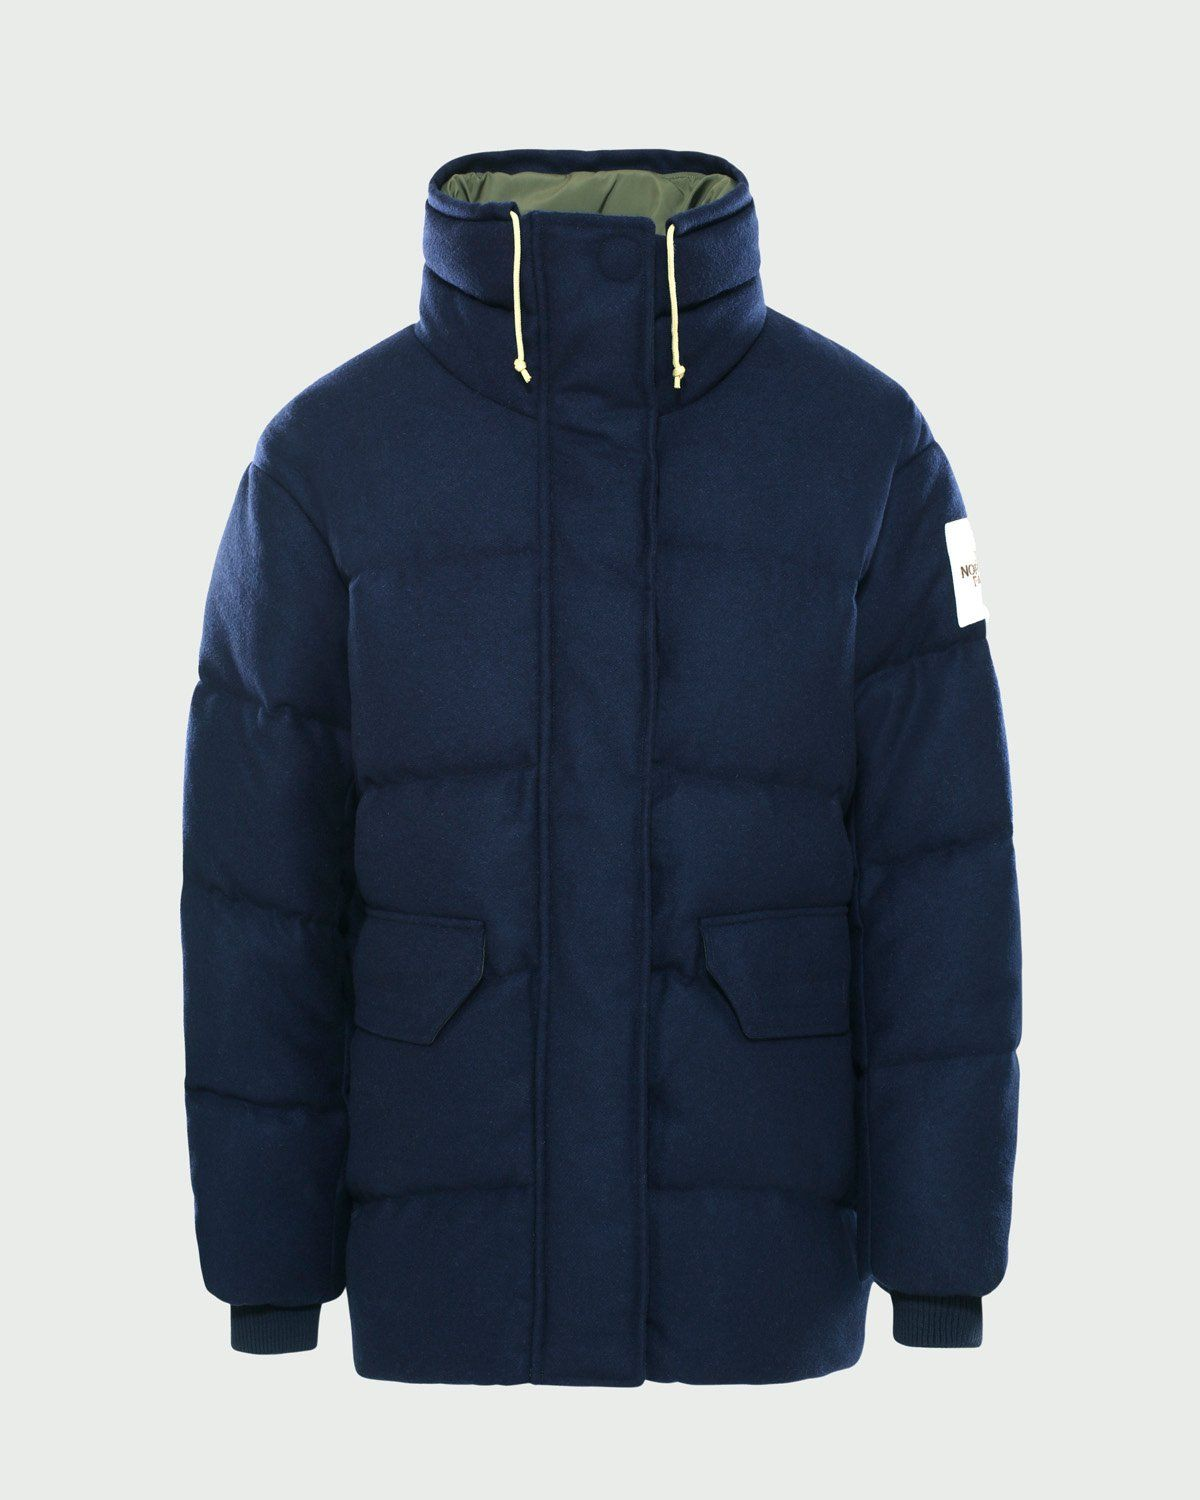 The North Face Brown Label — Larkspur Wool Down Jacket Navy Women - Image 1